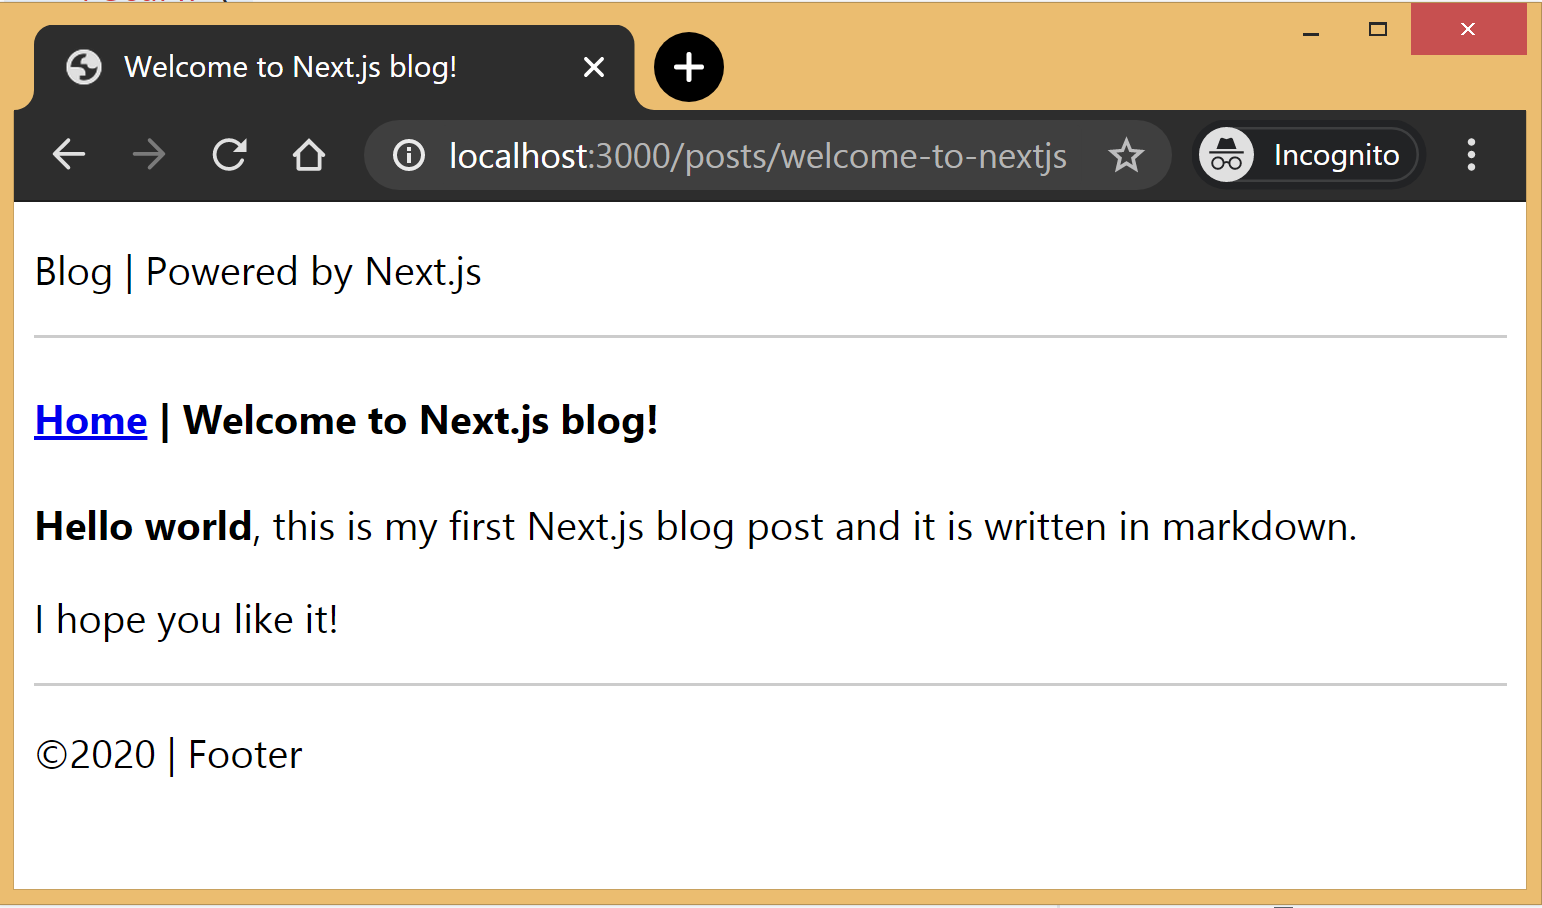 Screenshot of the blog page showing a welcome header and a hello world blue above the footer.